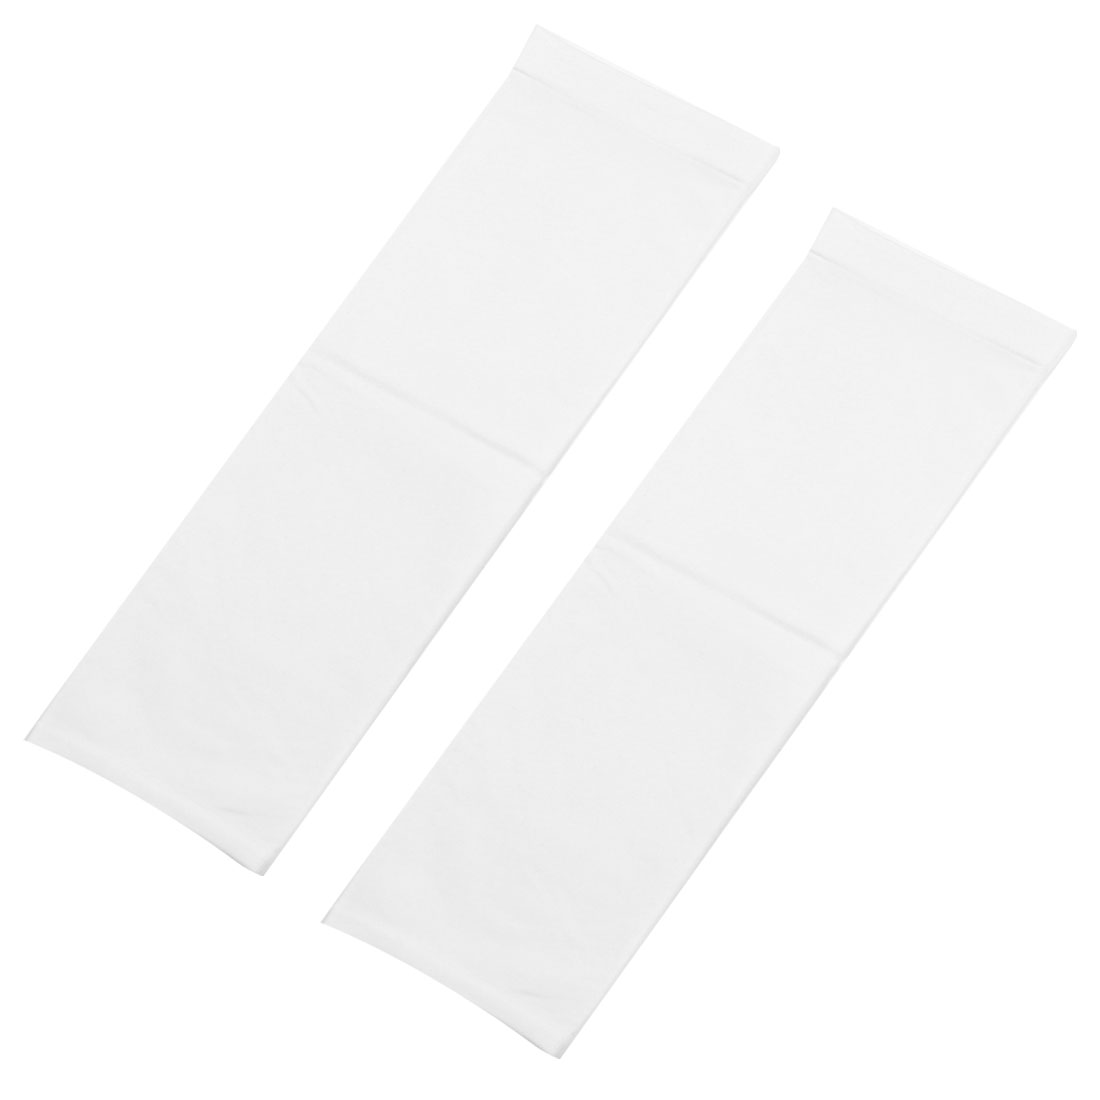 Pair Elastic Spandex Fingerless Winter Arm Warmers Long Gloves White for Adults